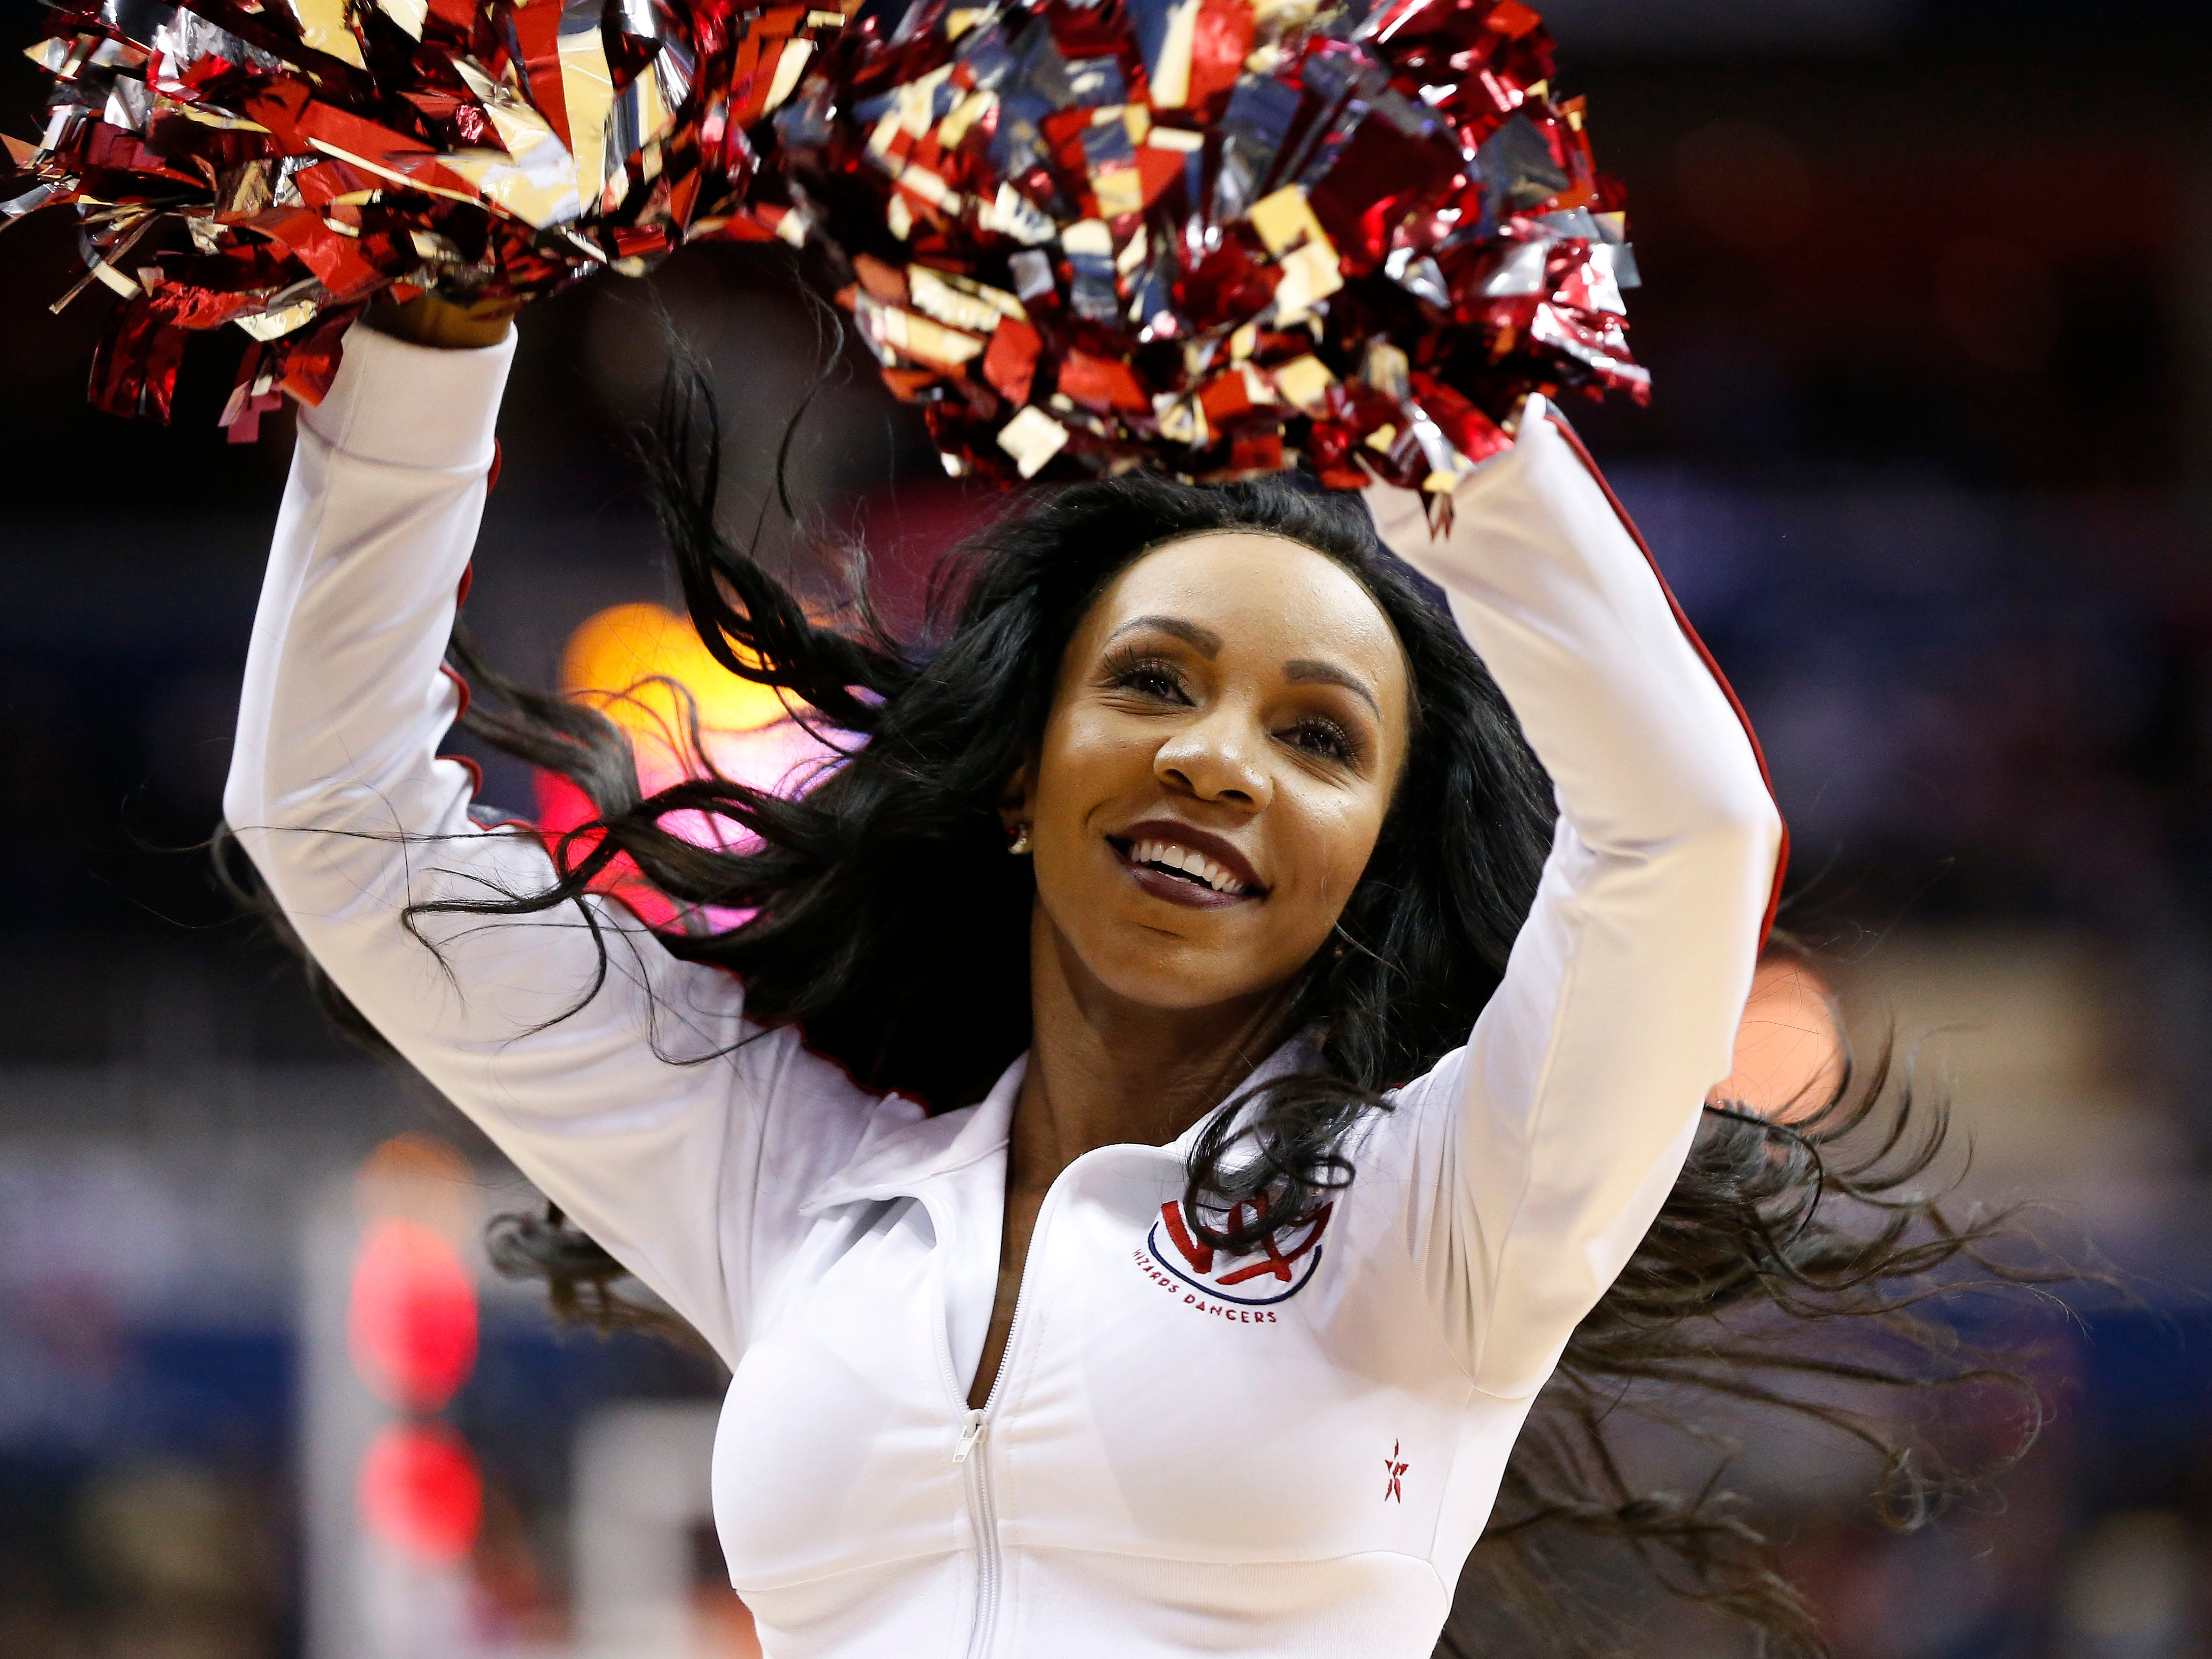 Nov. 18: The Wizards dance team performs during a stop in play against the Trail Blazers in Washington.